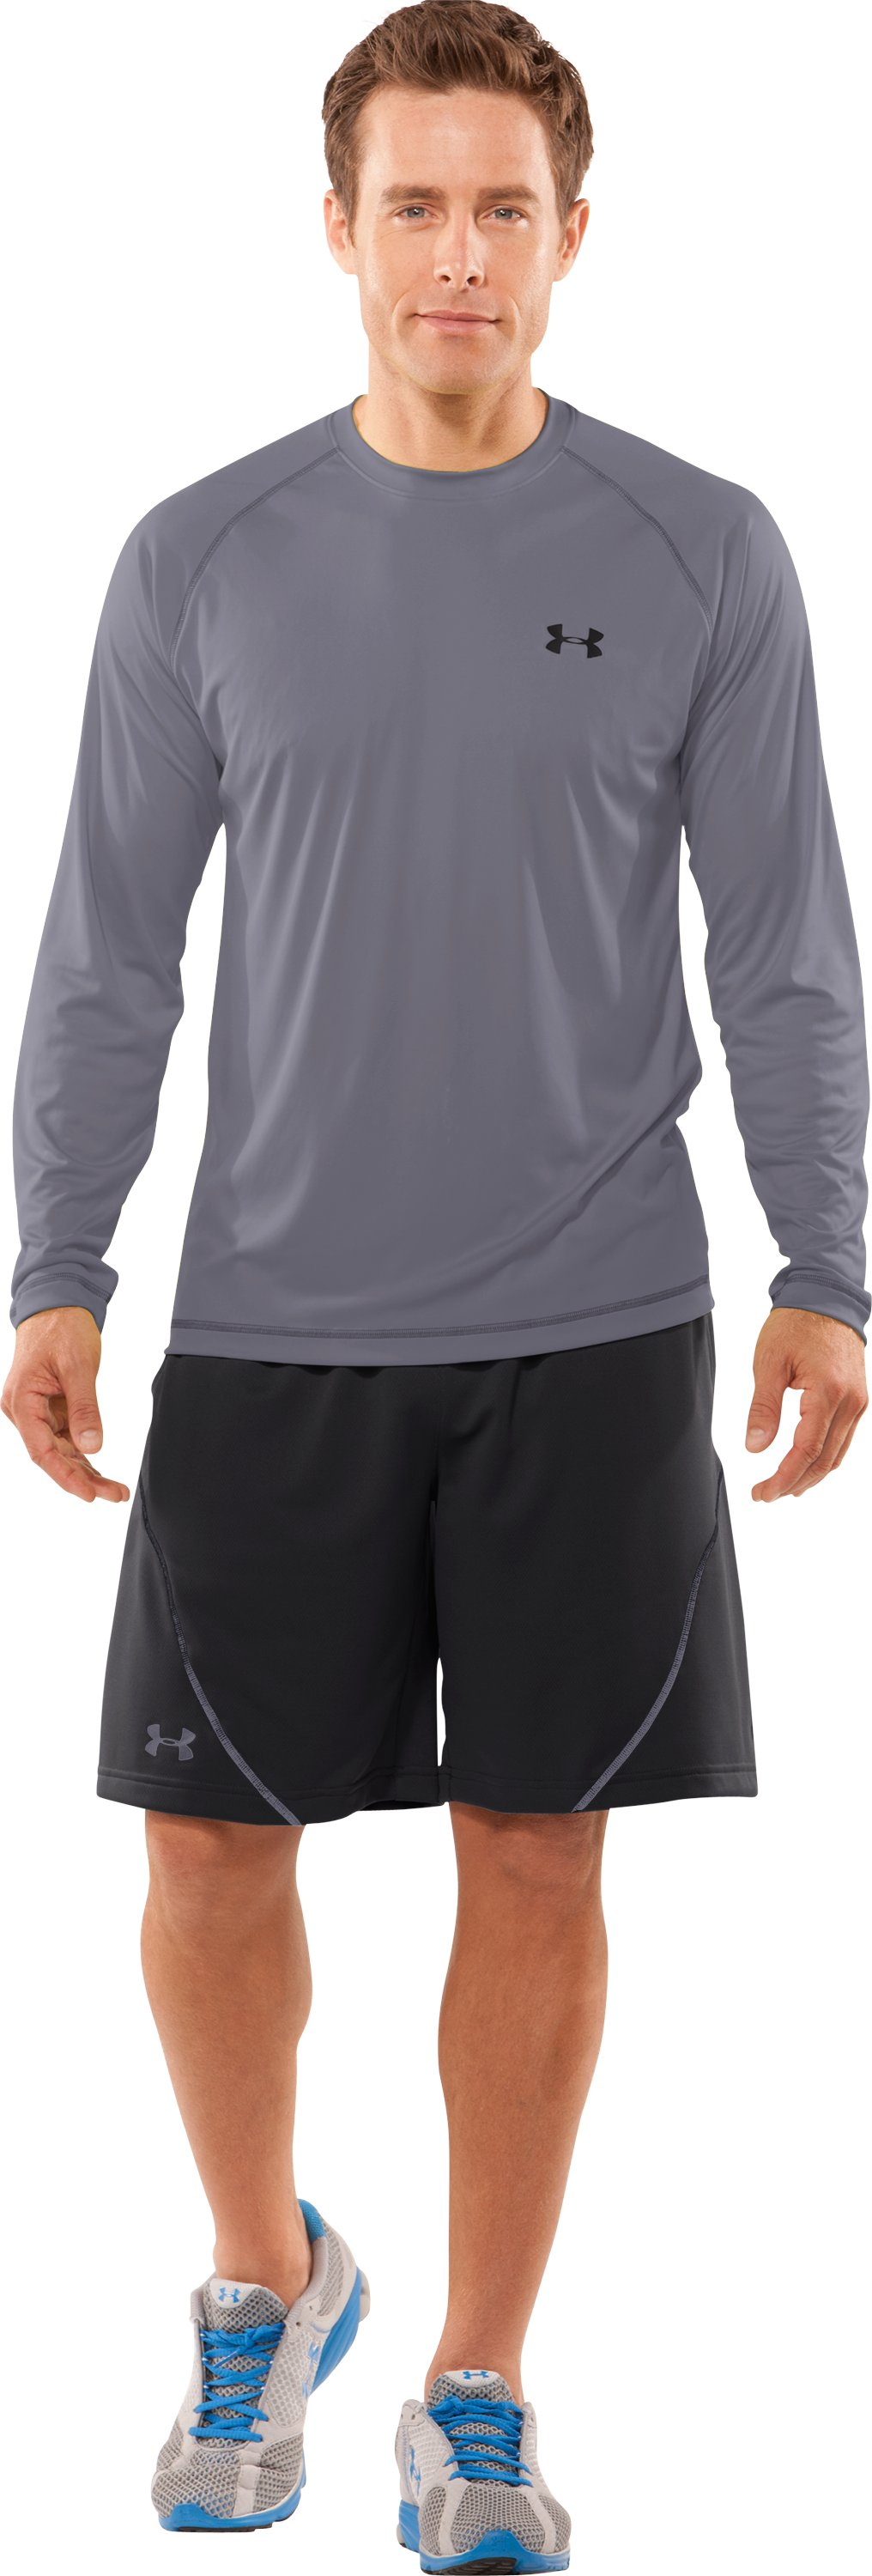 Men's UA Catalyst Long Sleeve T-Shirt, Graphite